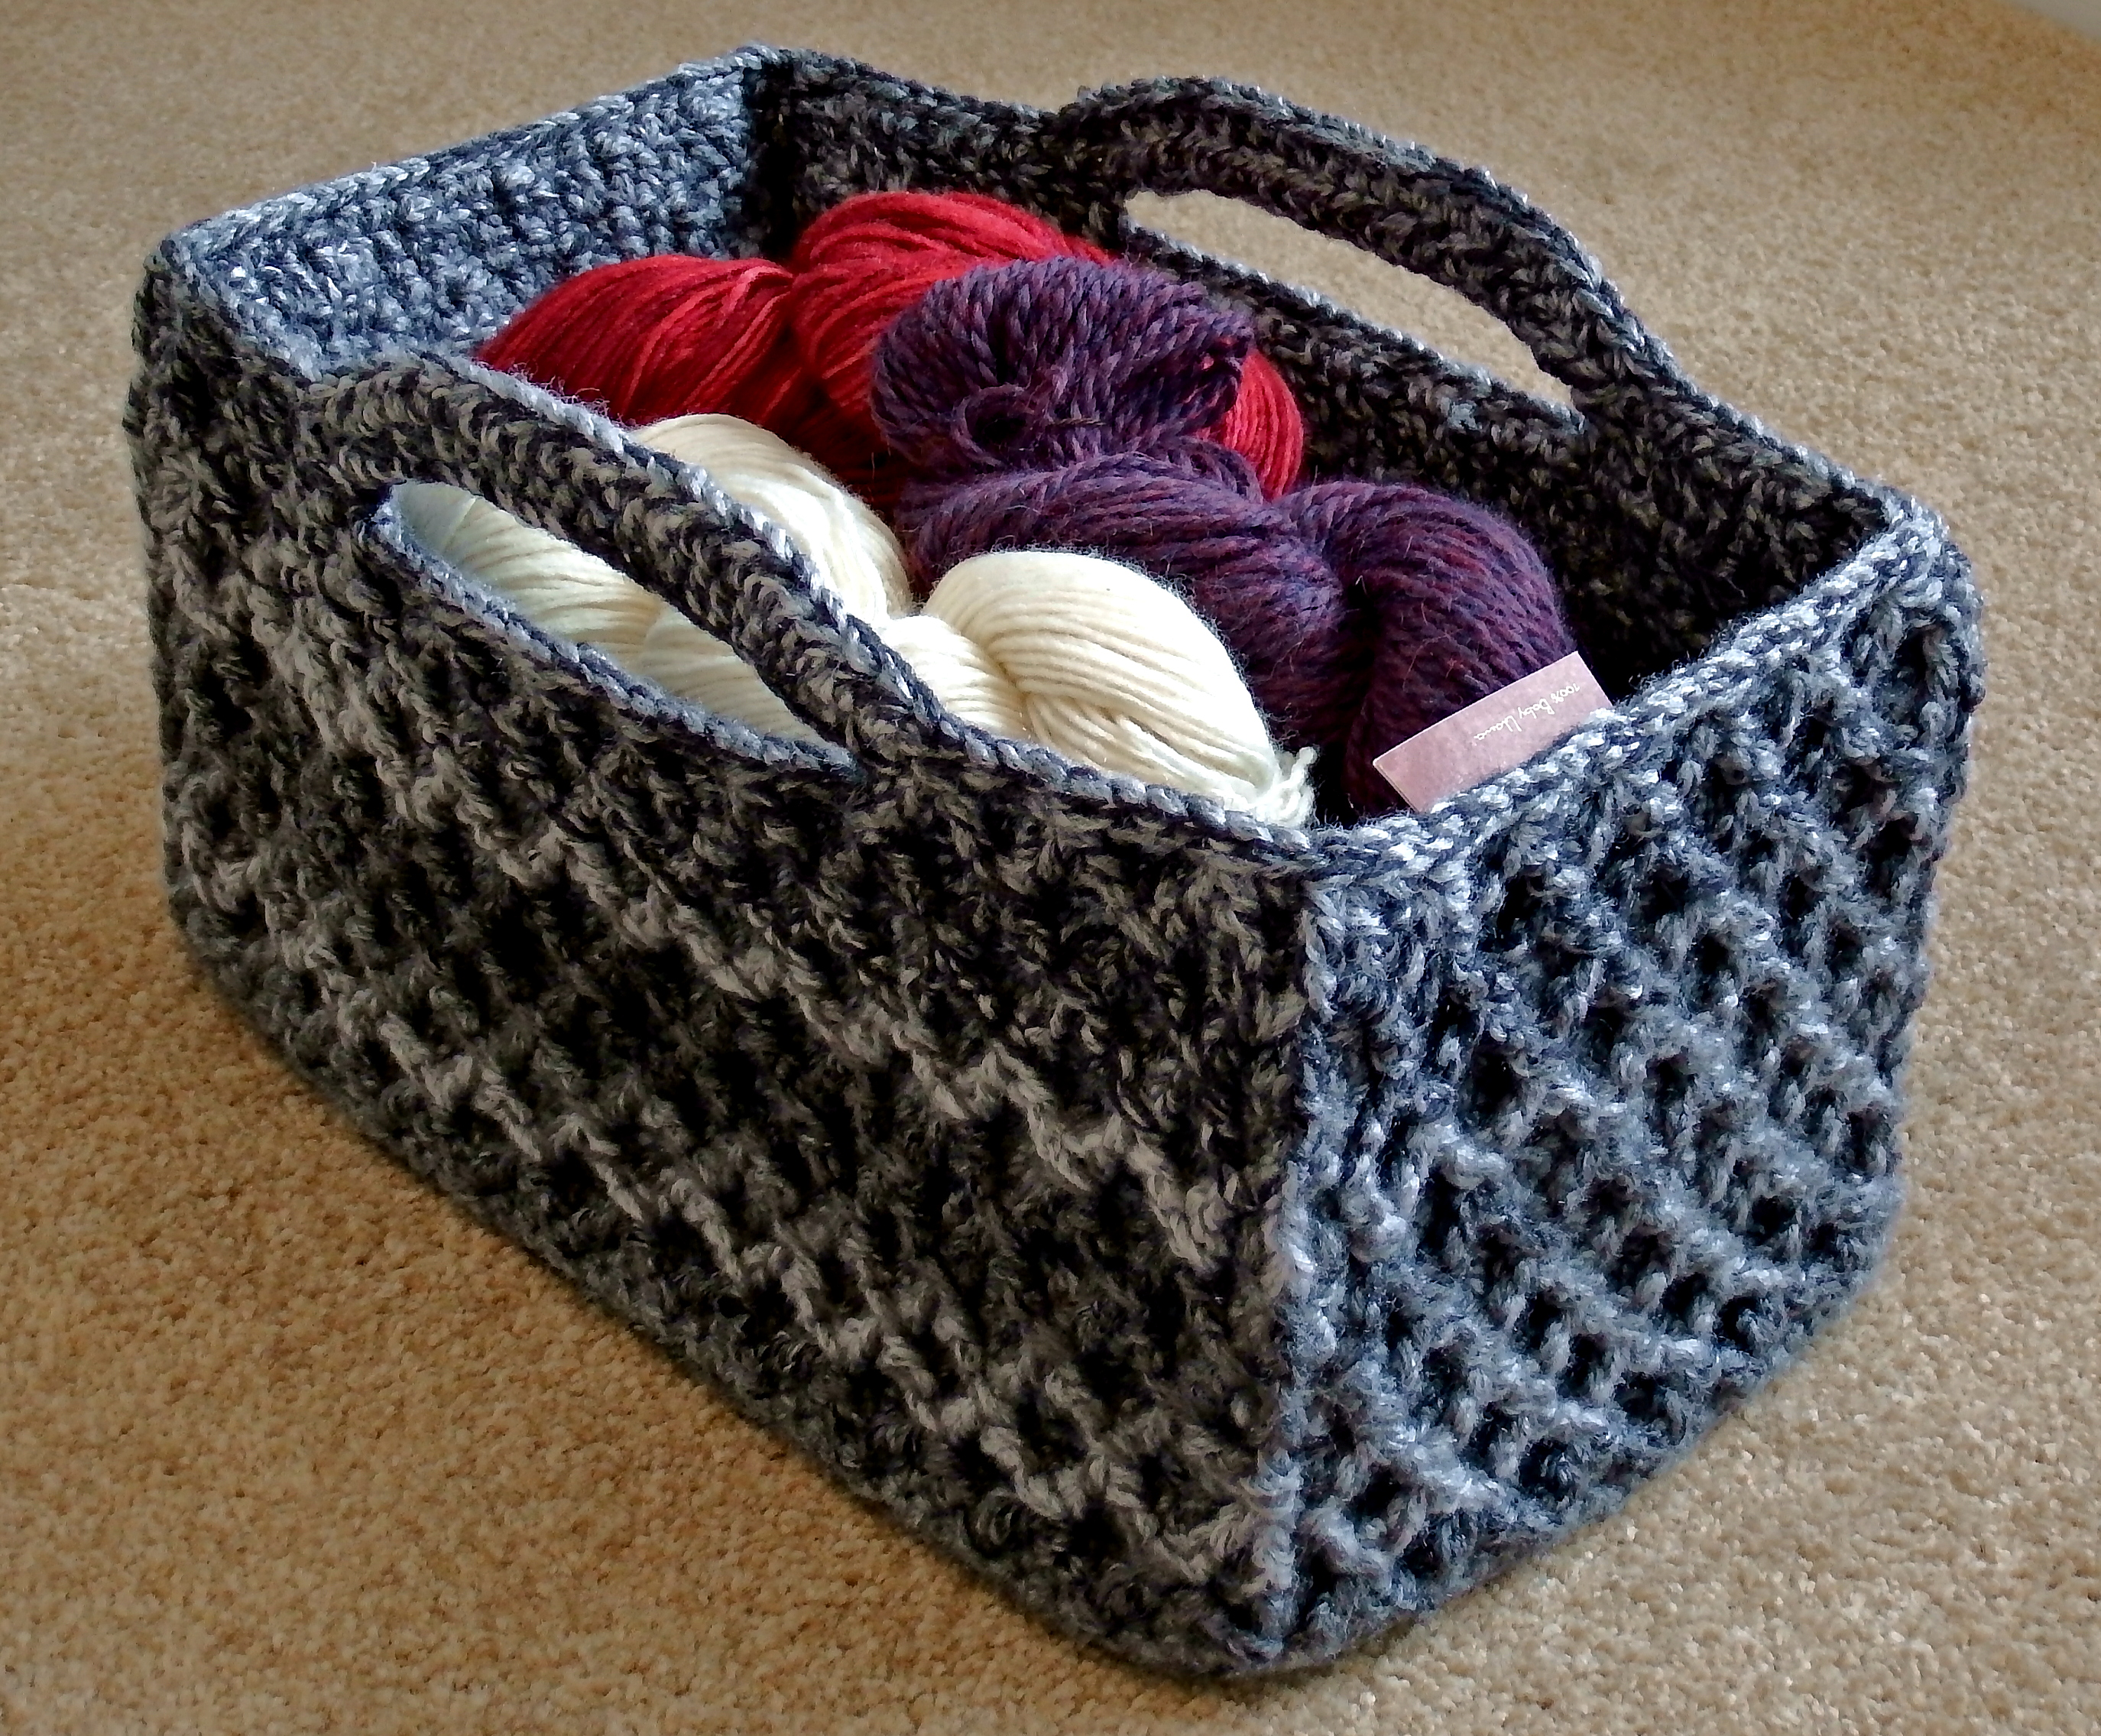 Crocheting Baskets : Rectangular Diamond Trellis Basket - Free customisable crochet pattern ...